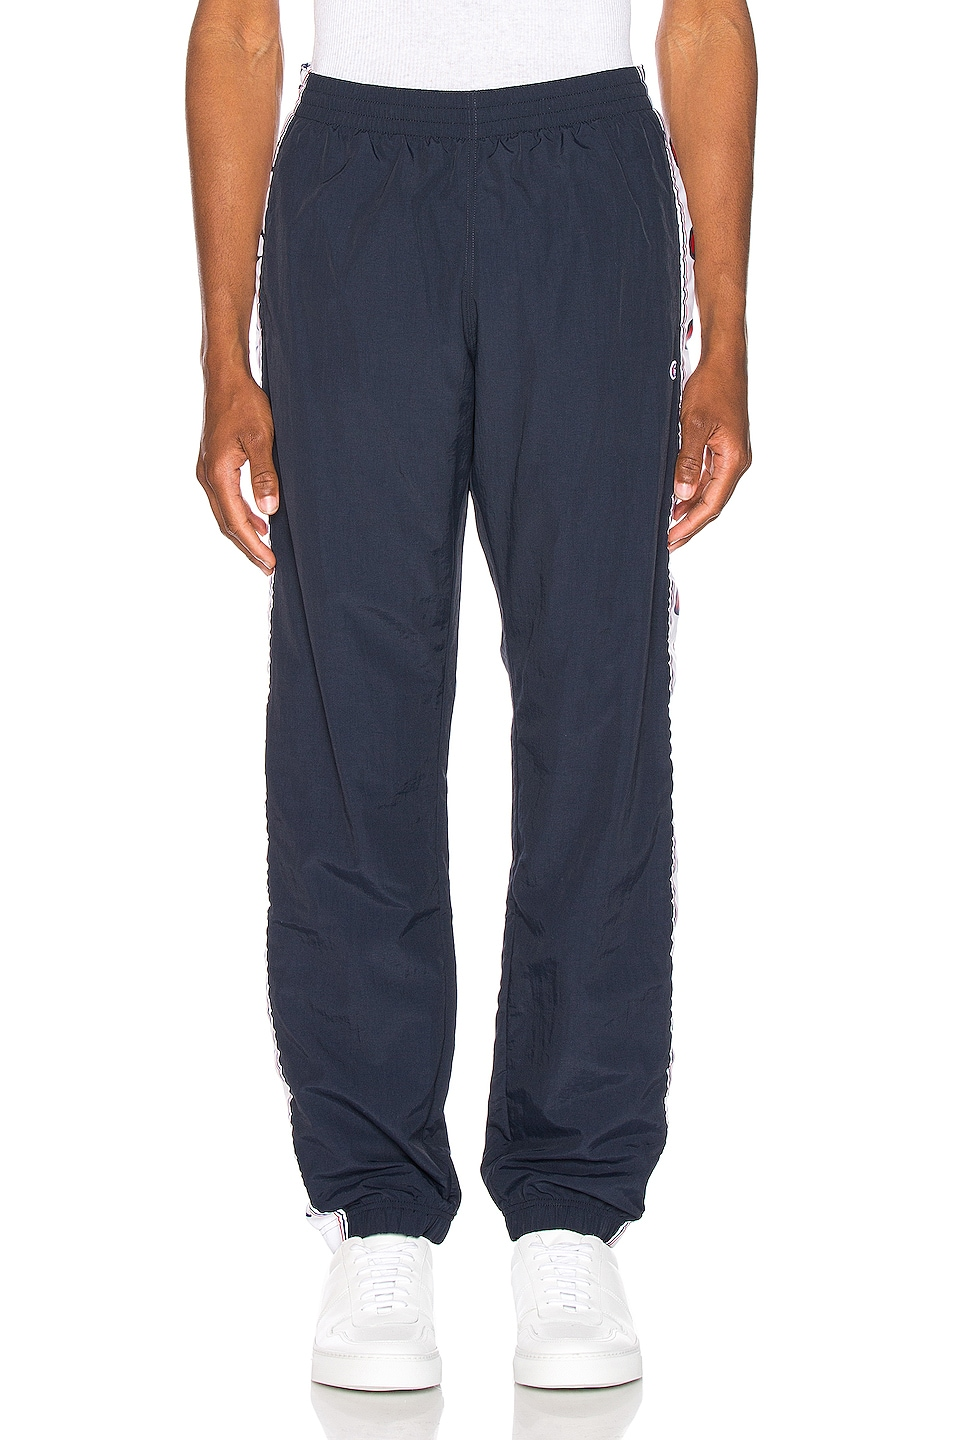 Image 2 of Champion Reverse Weave Elastic Cuff Pant in Navy